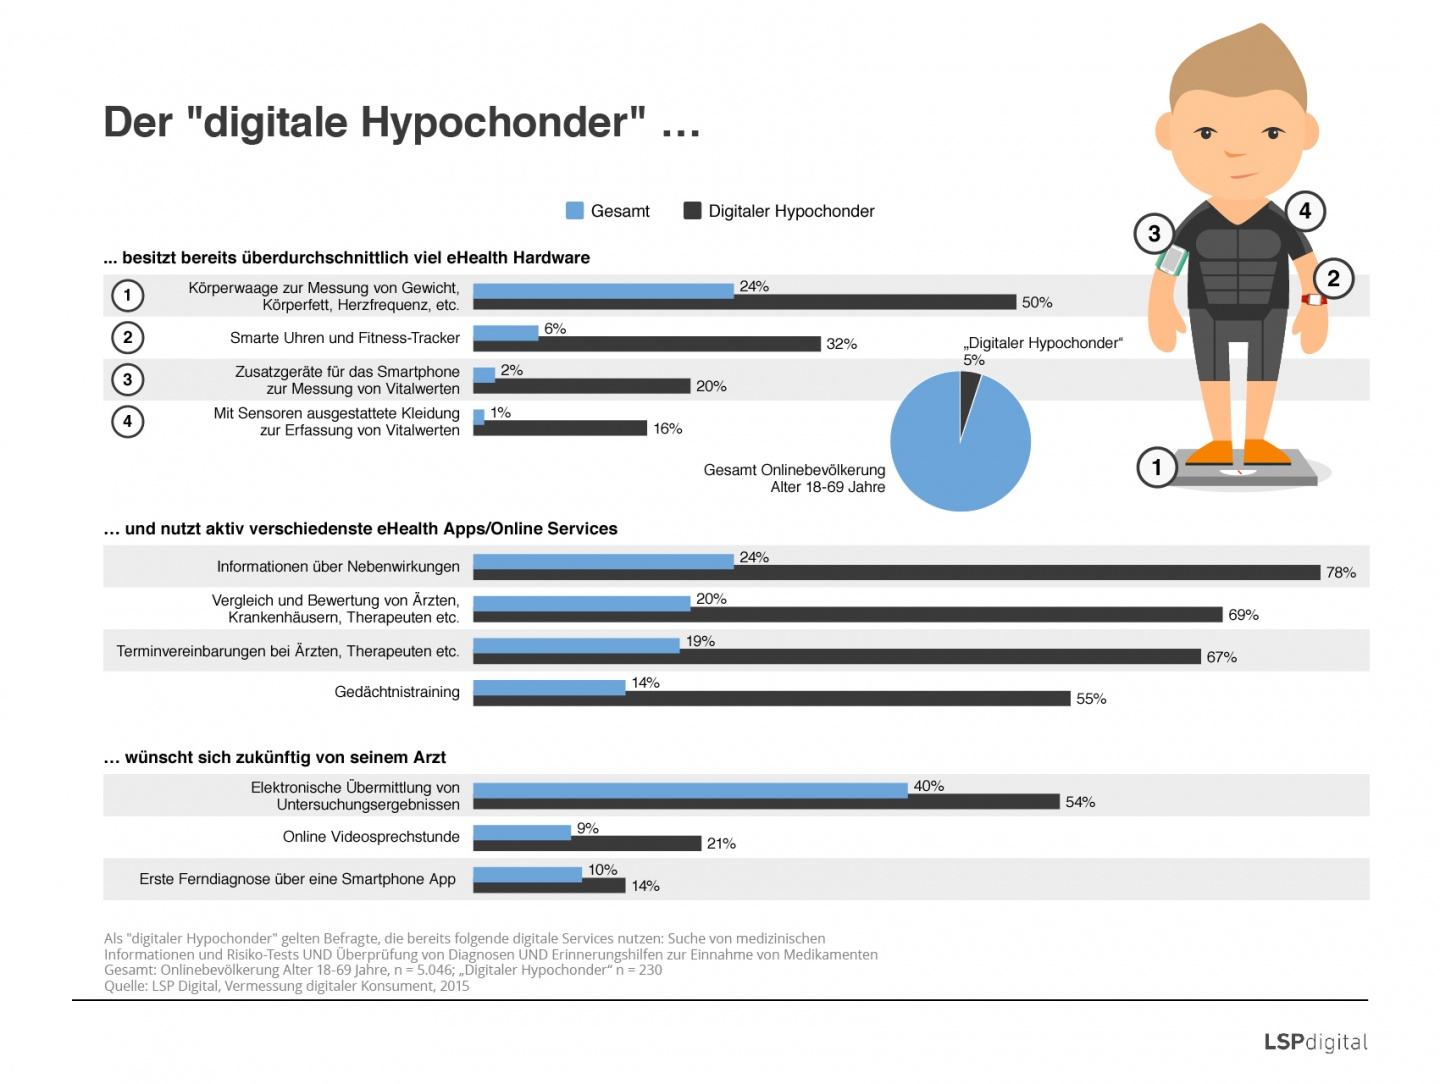 Digitale Hypochonder